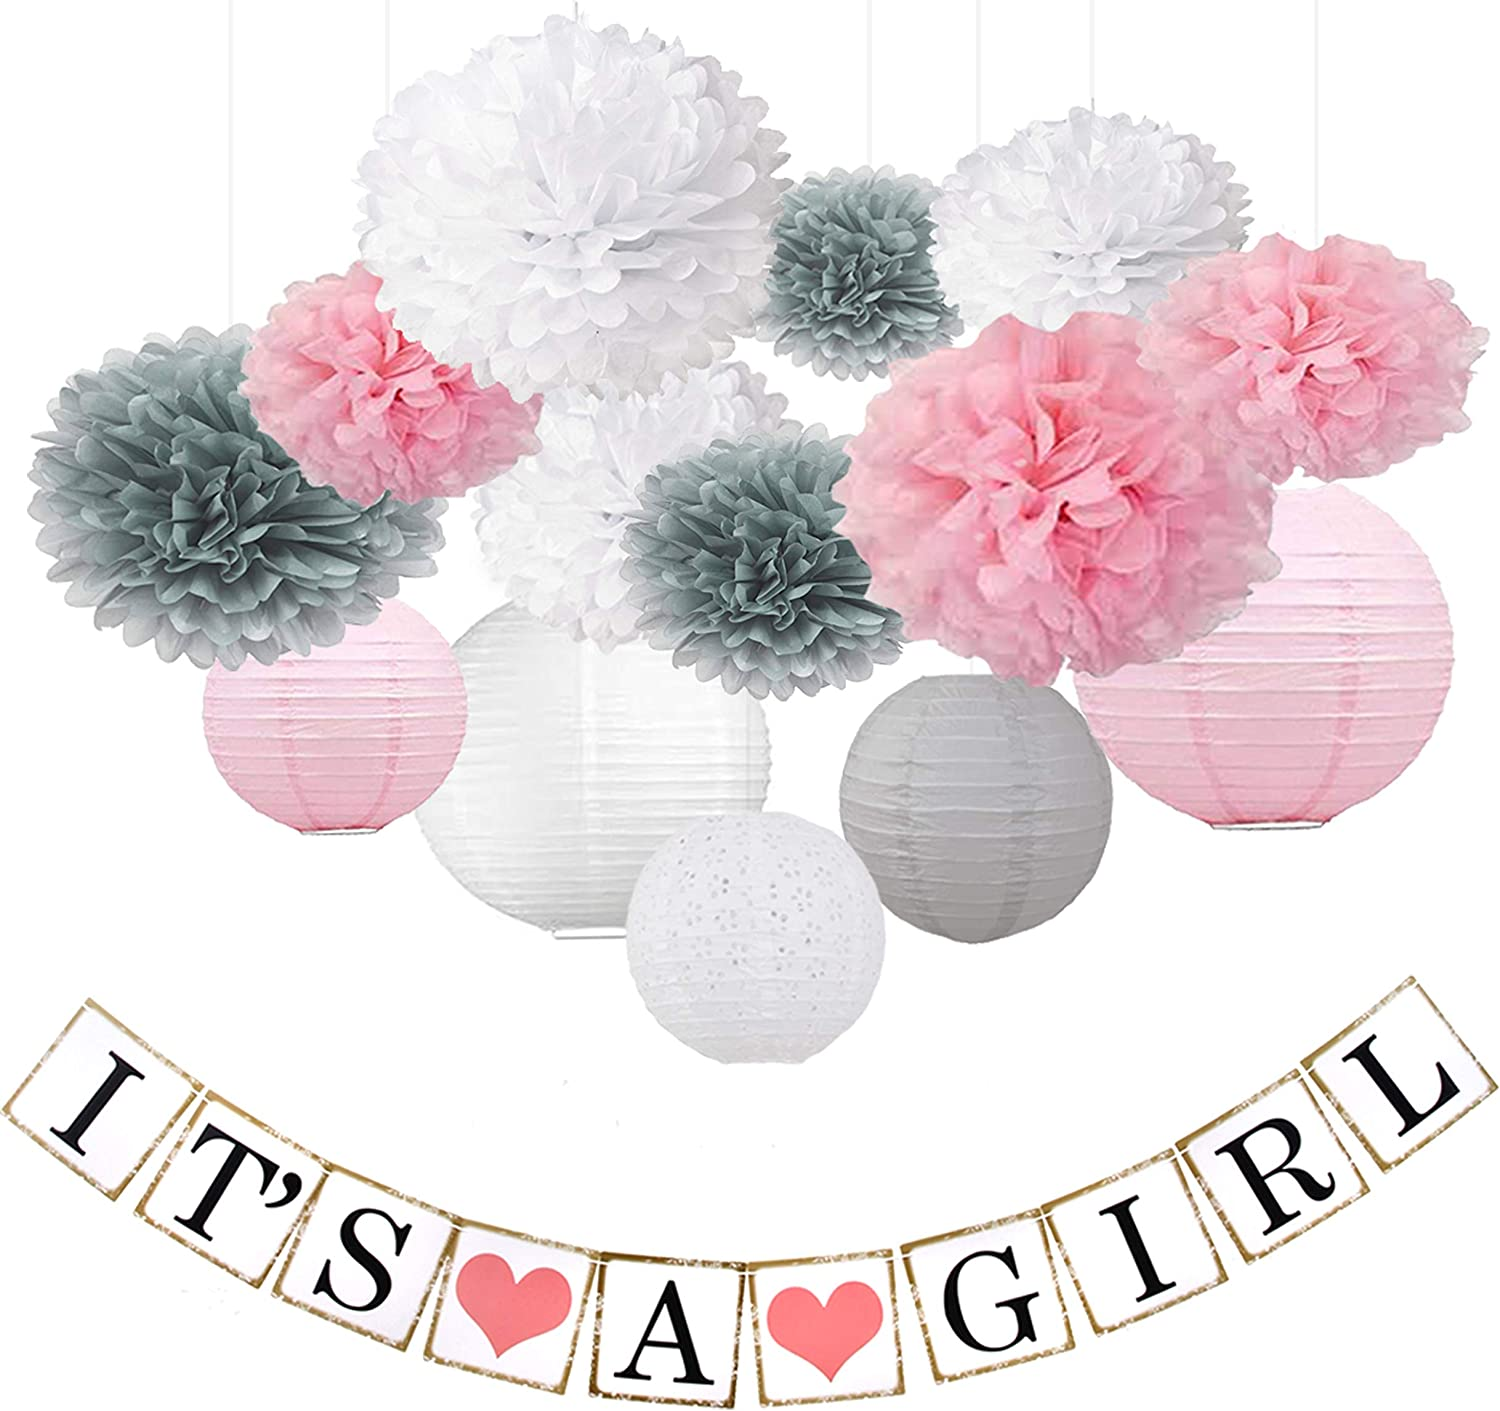 Beau & Miel Baby Shower Decorations for Girl, decoracion para Baby Shower niña, babyshower Package, Decoration Party kit with Banner Decor, Pink White Gray Packages Paper pom poms for Babies